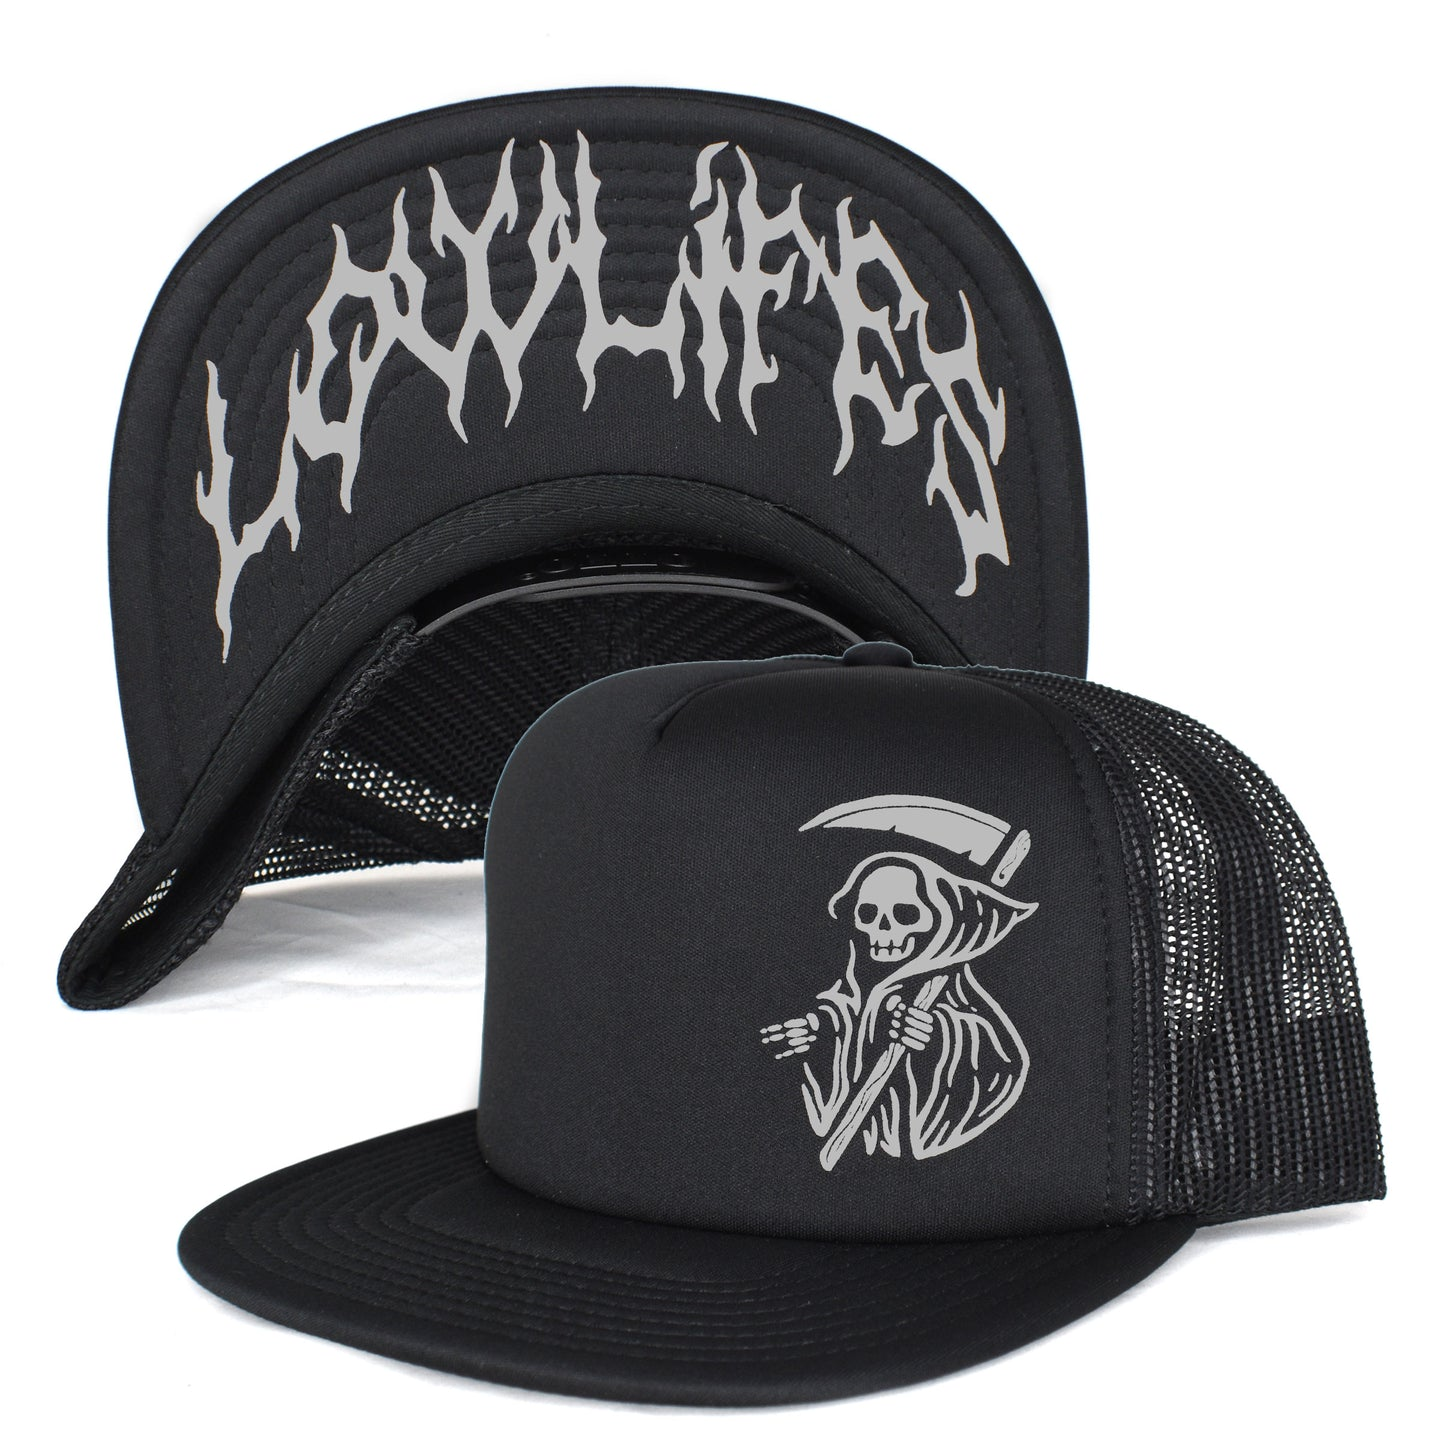 Hat - Trucker: Lowlifes - Shocking Death